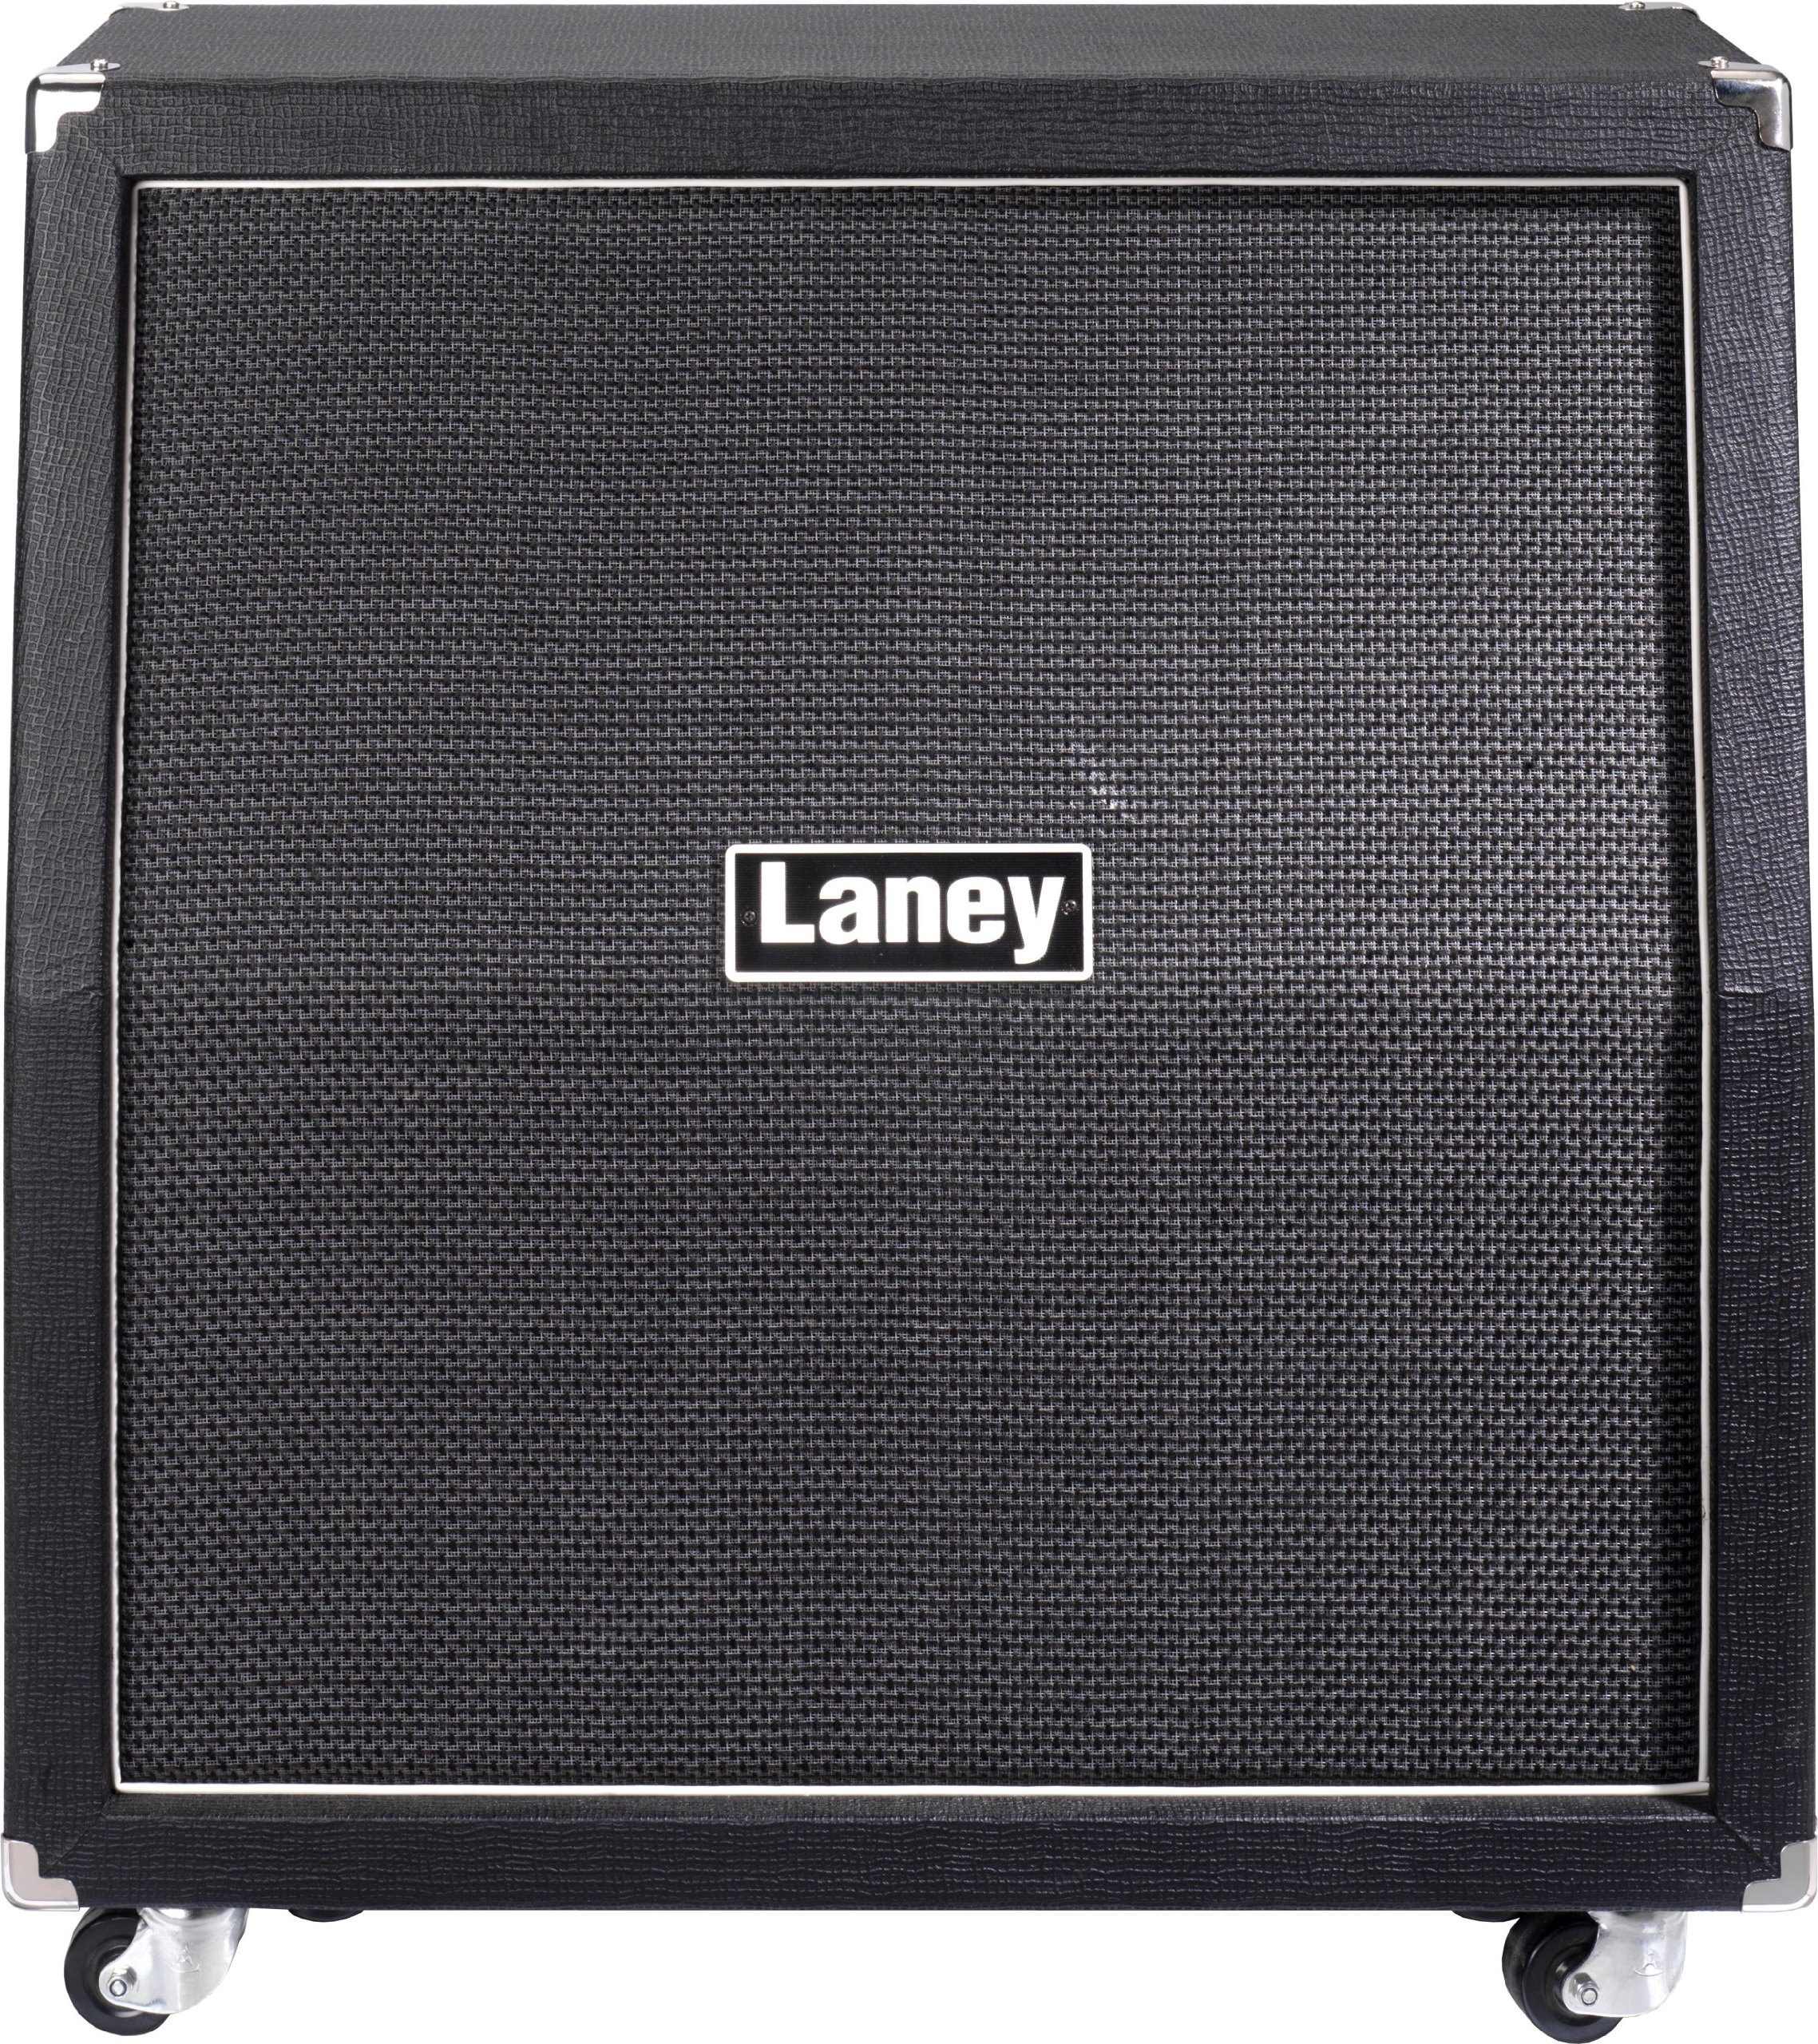 Laney Amps GS412PA 4x12 Guitar Amplifier Cabinet by Laney Amps